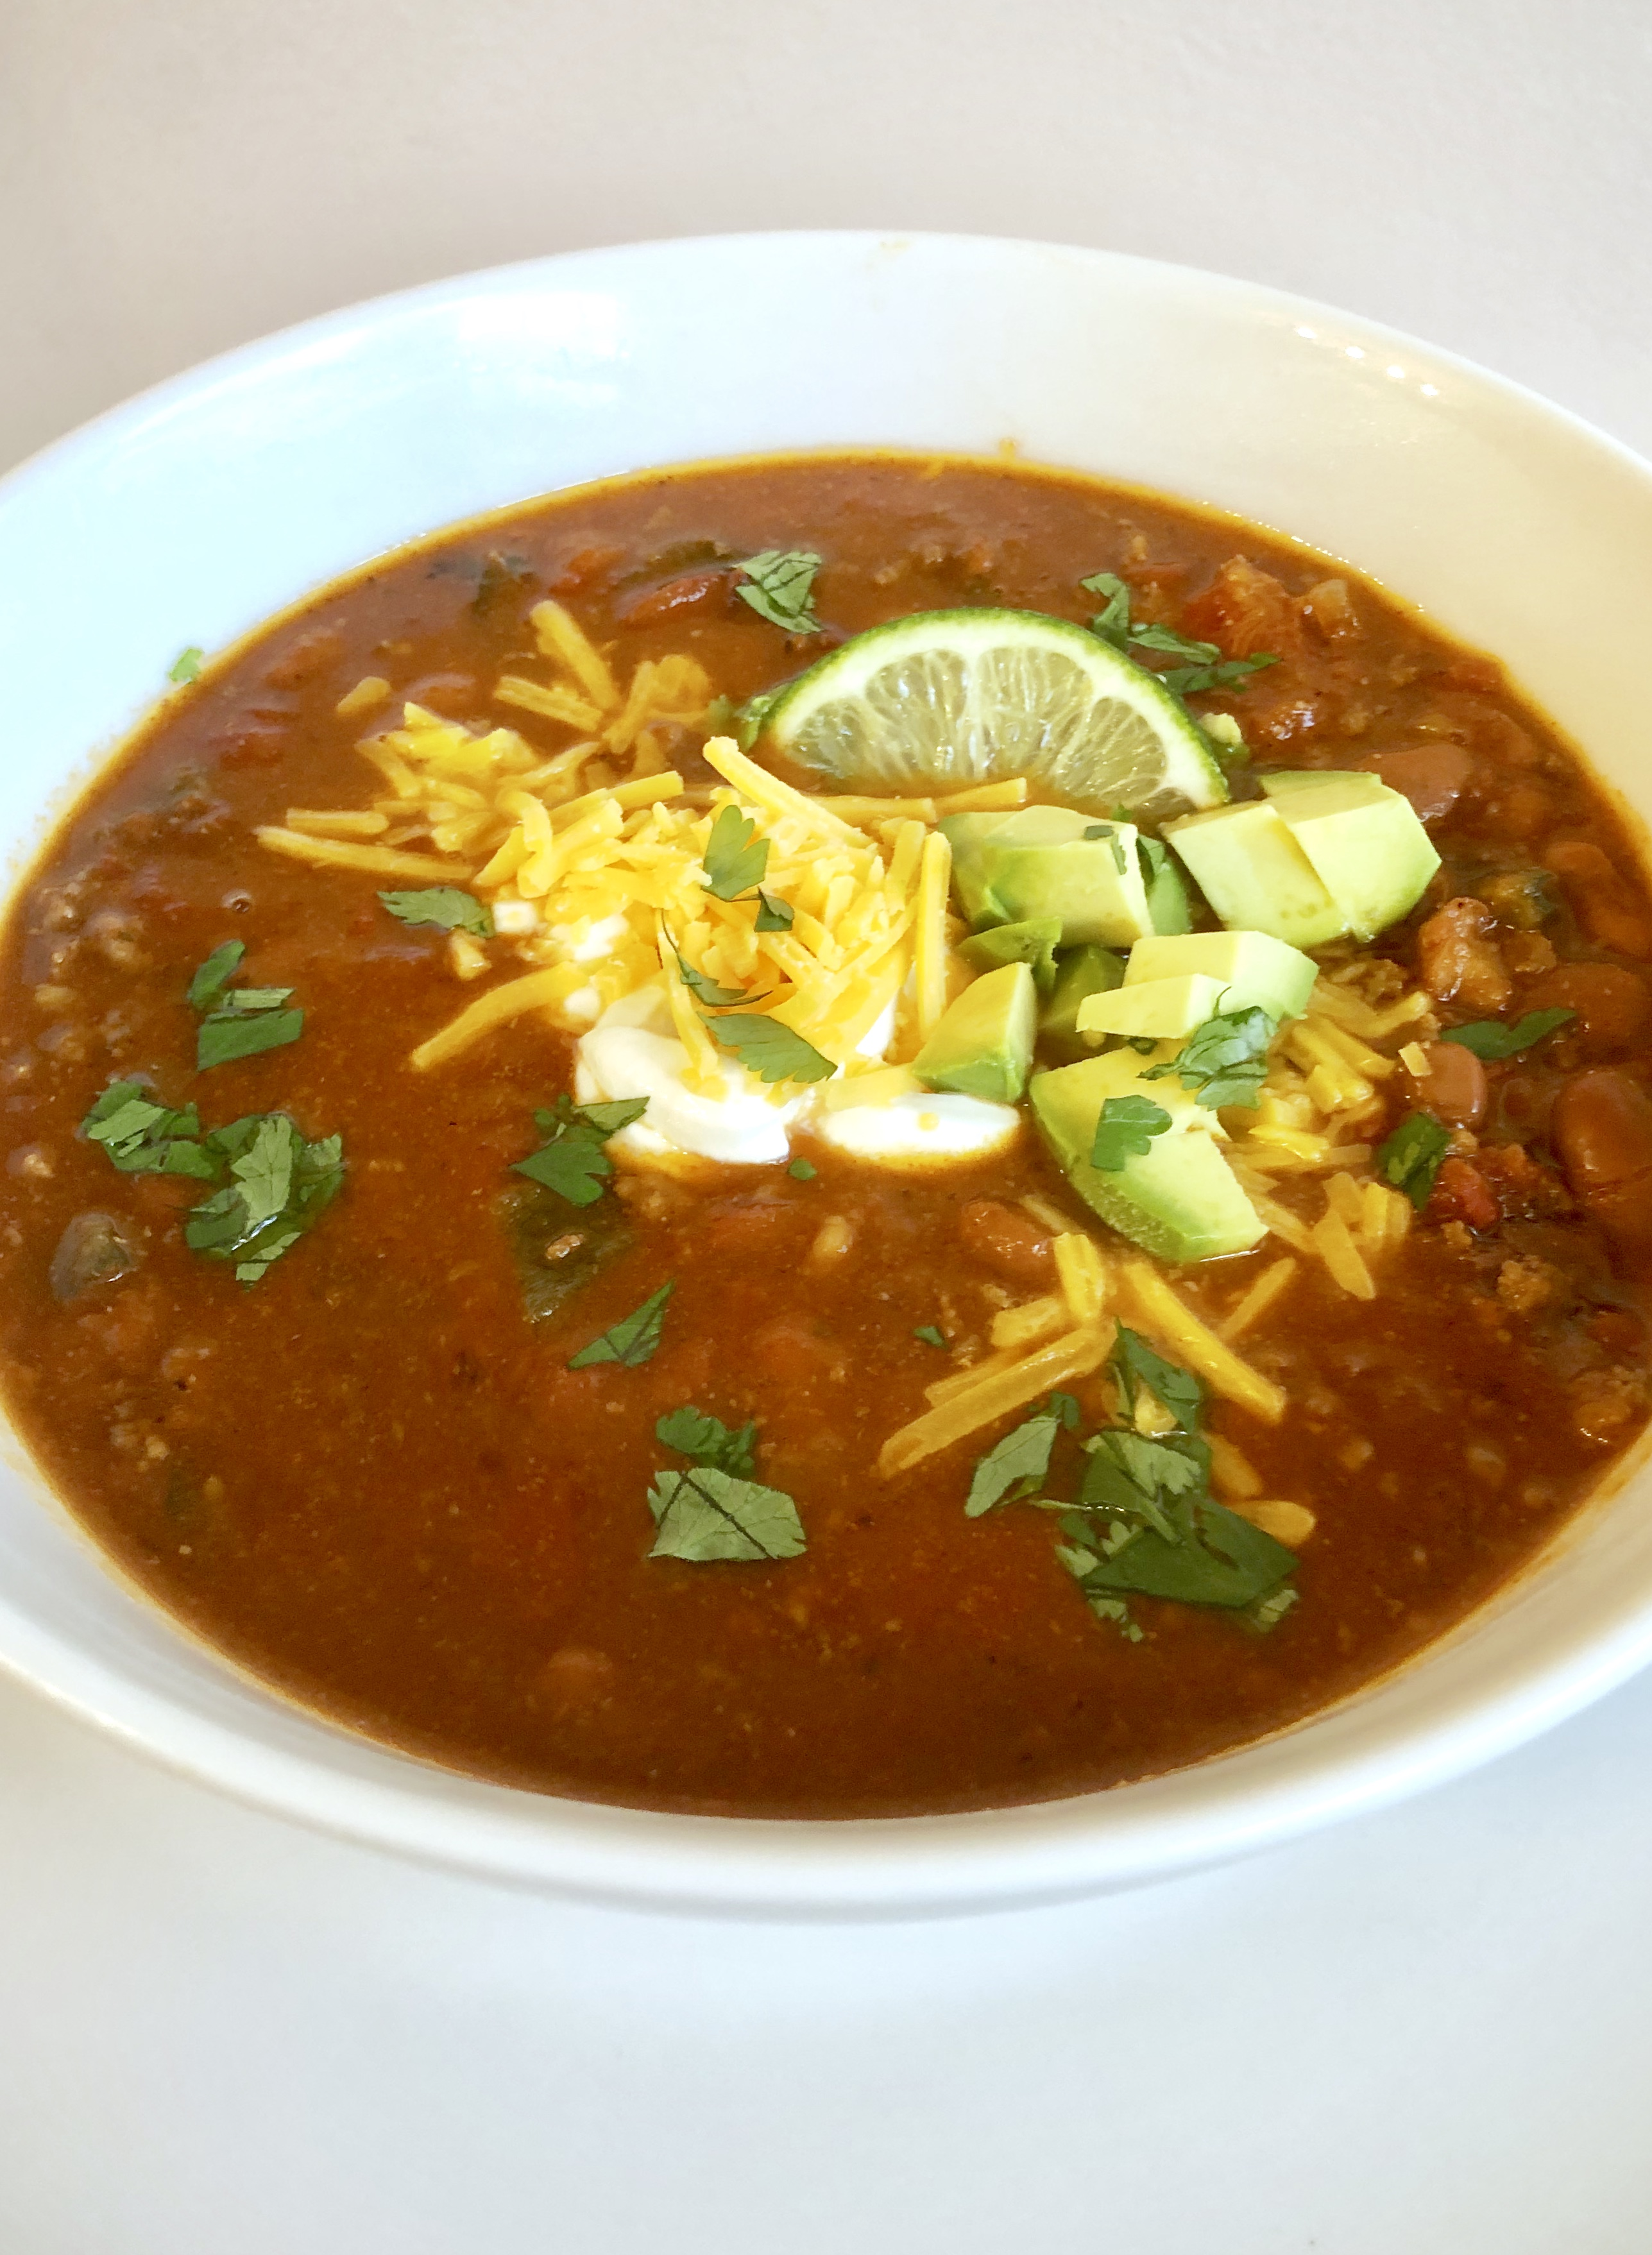 Instantpot Chili Healthy Clean Ingredients Full Of Flavor